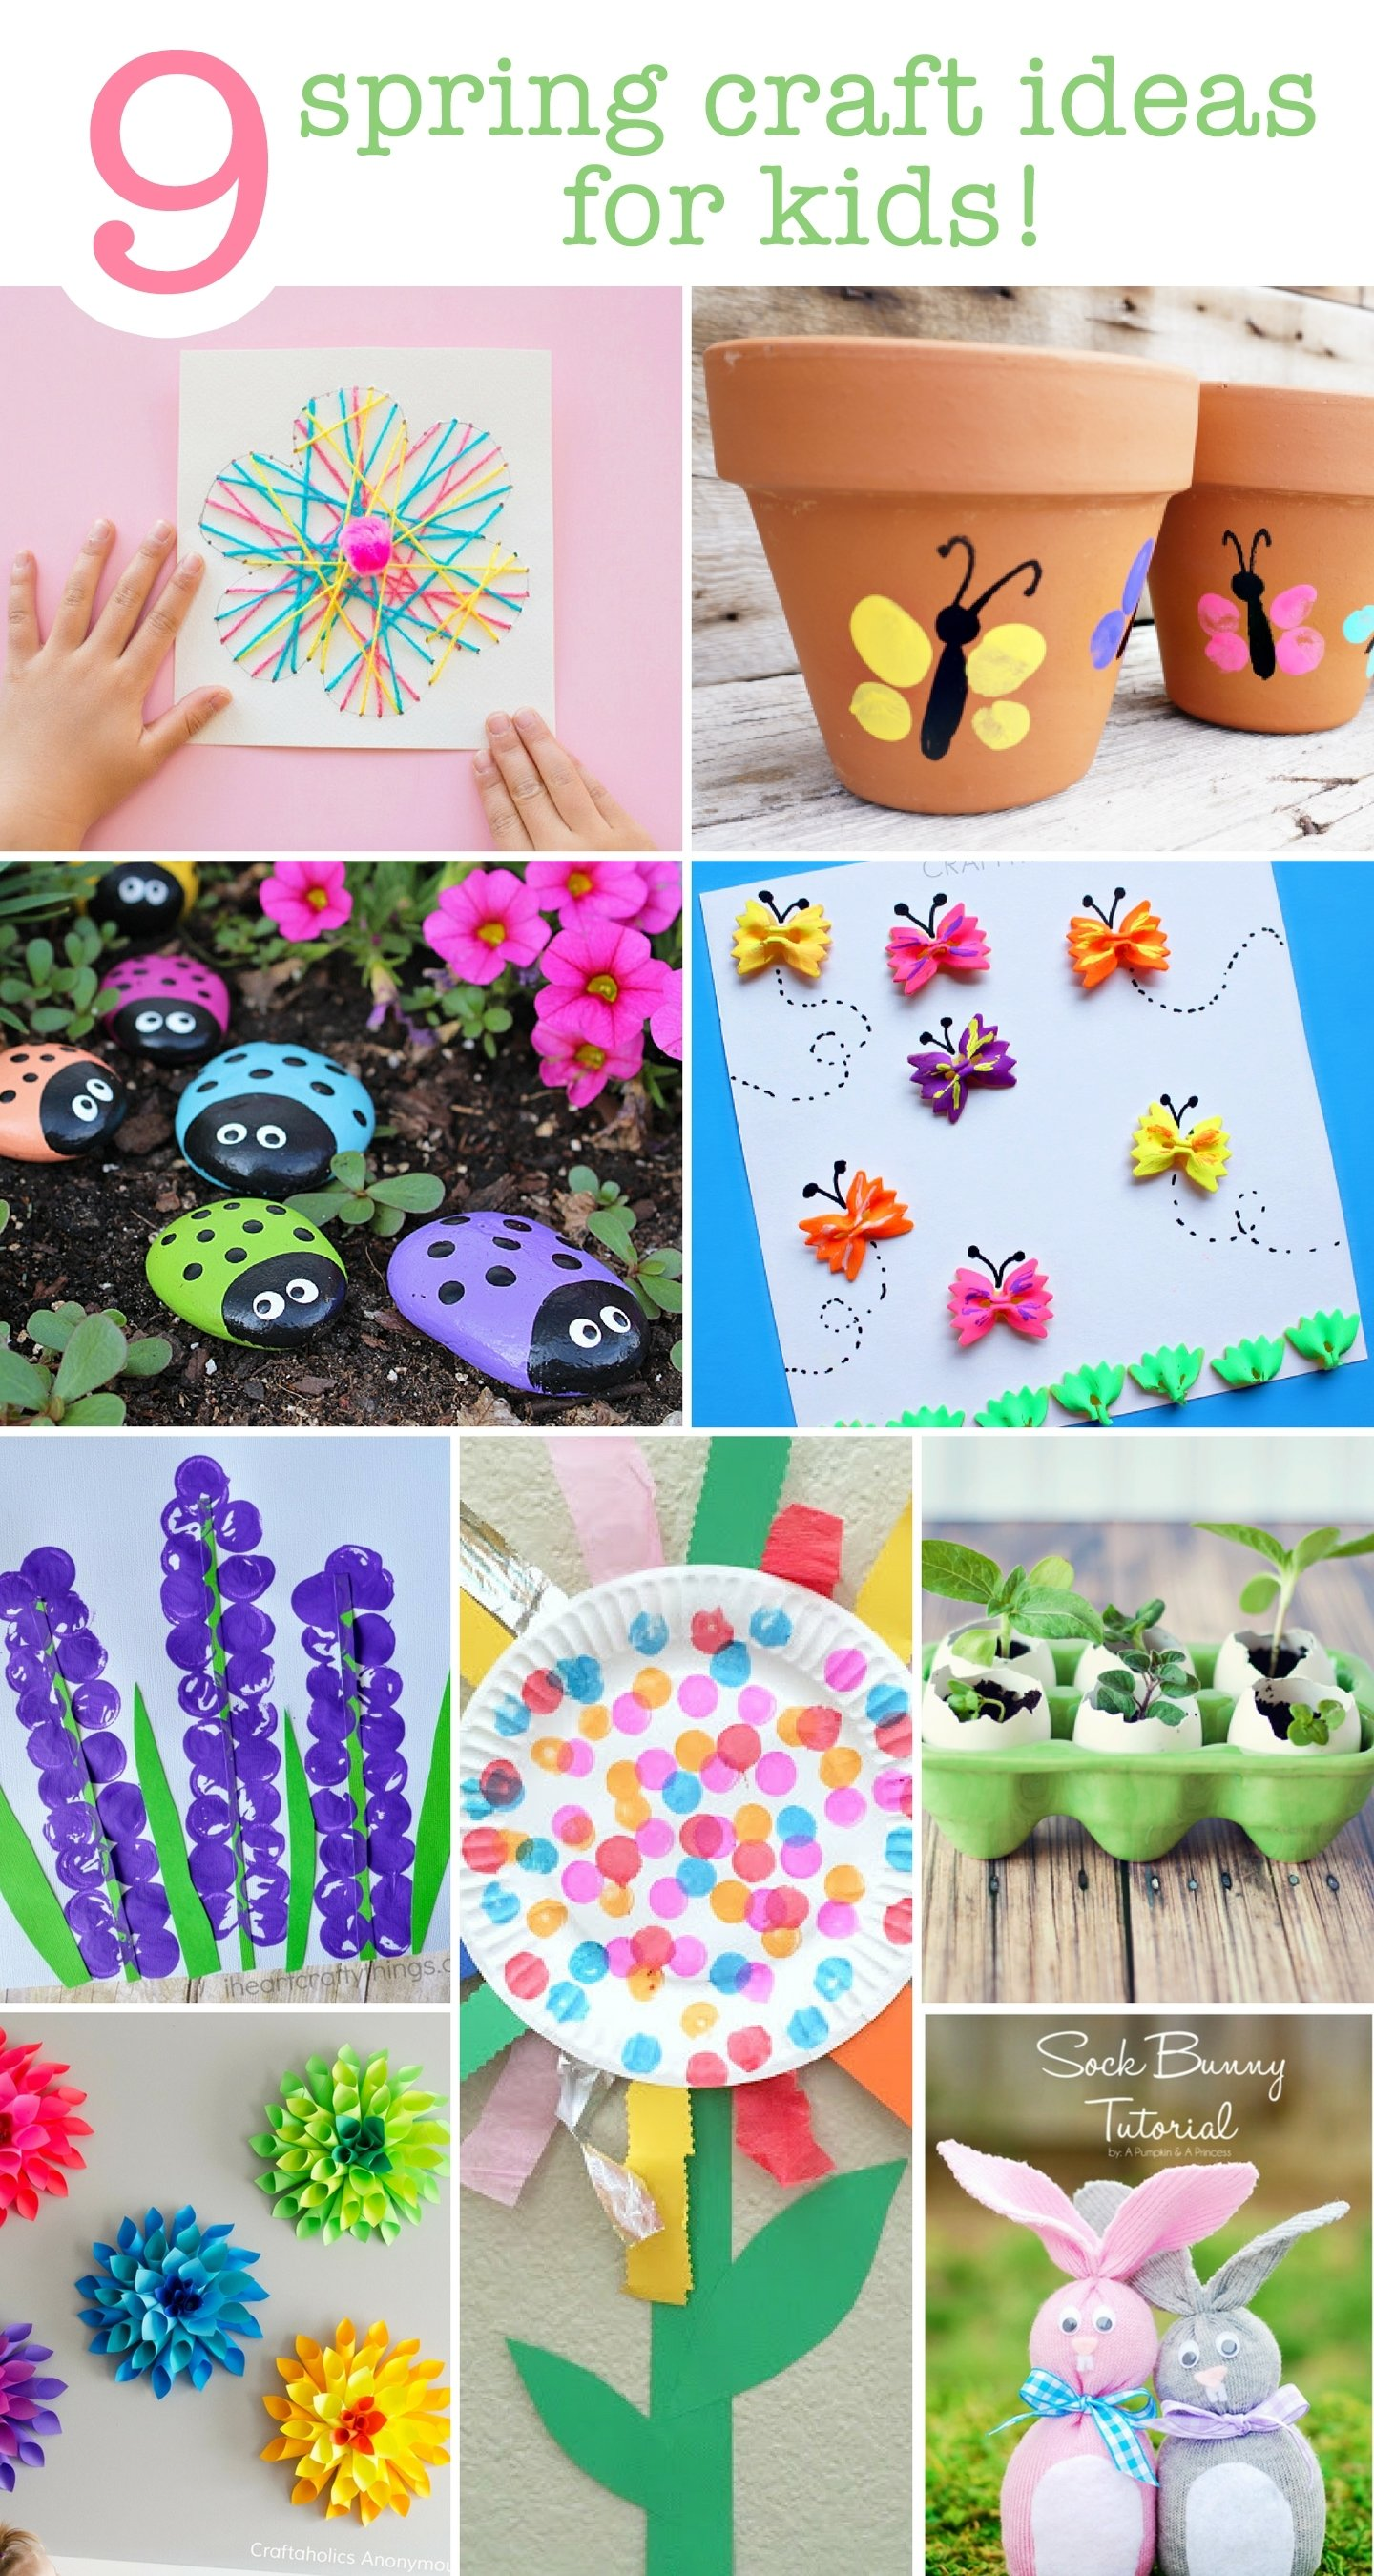 9 spring craft ideas for the kids | save this list!